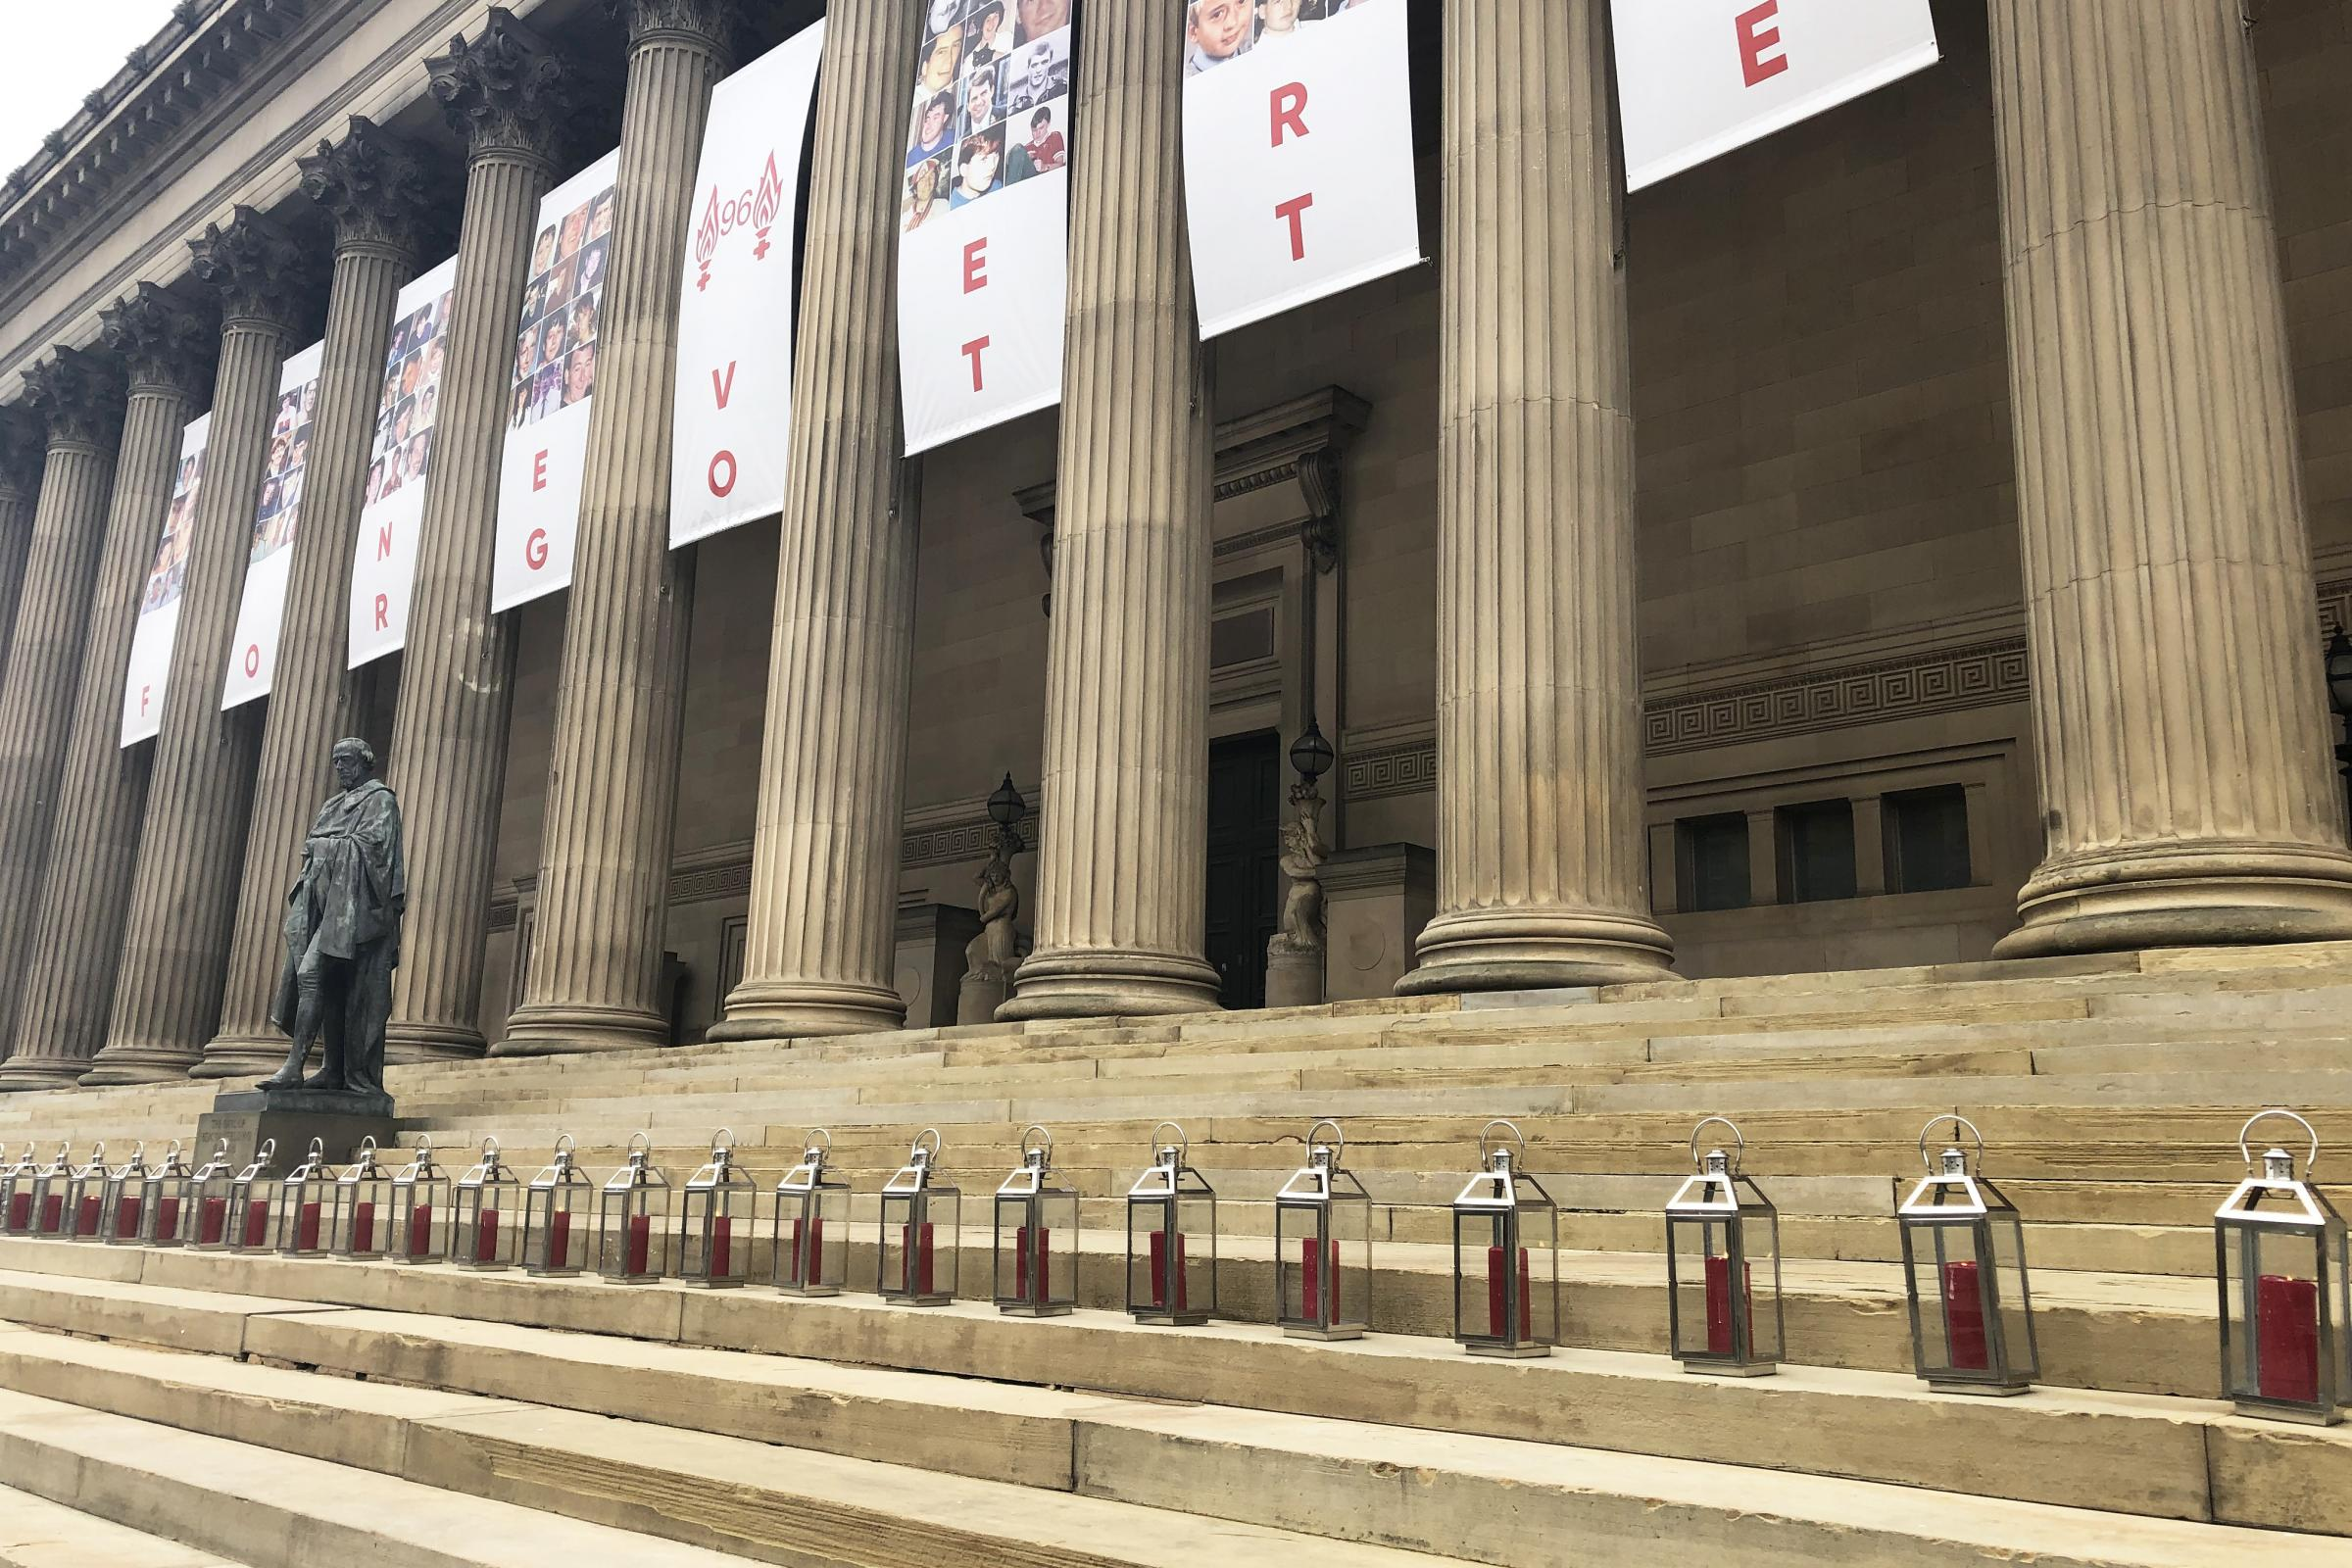 Ninety-six lanterns are lit on the steps of St George's Hall in Liverpool